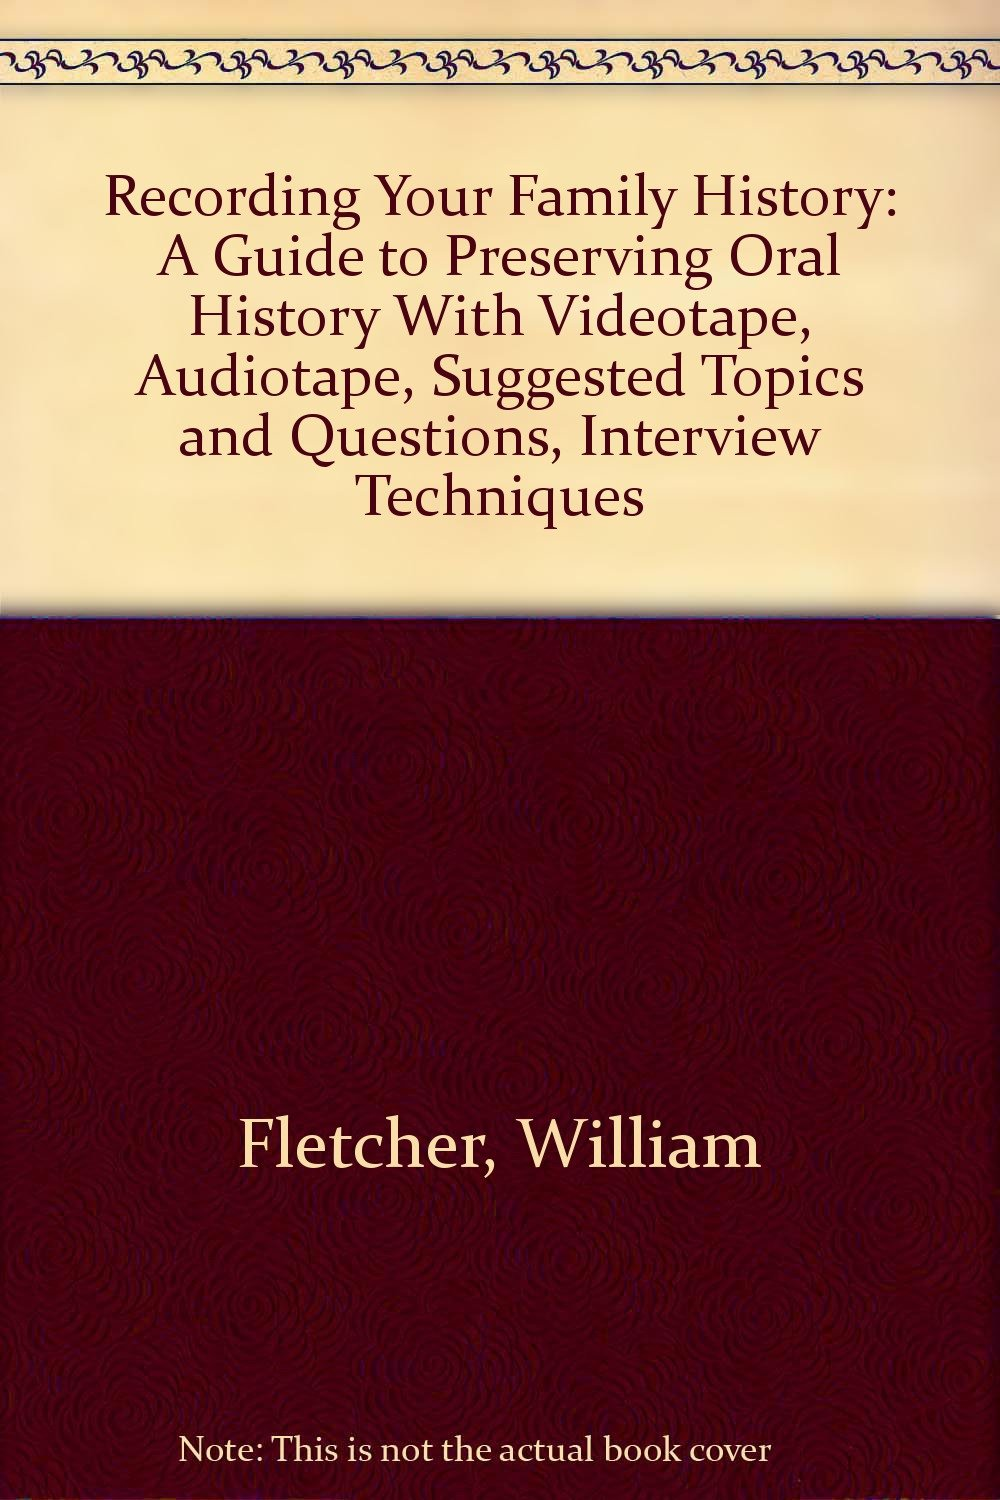 Recording Your Family History: A Guide to Preserving Oral History With Videotape, Audiotape, Suggested Topics and Questions, Interview Techniques